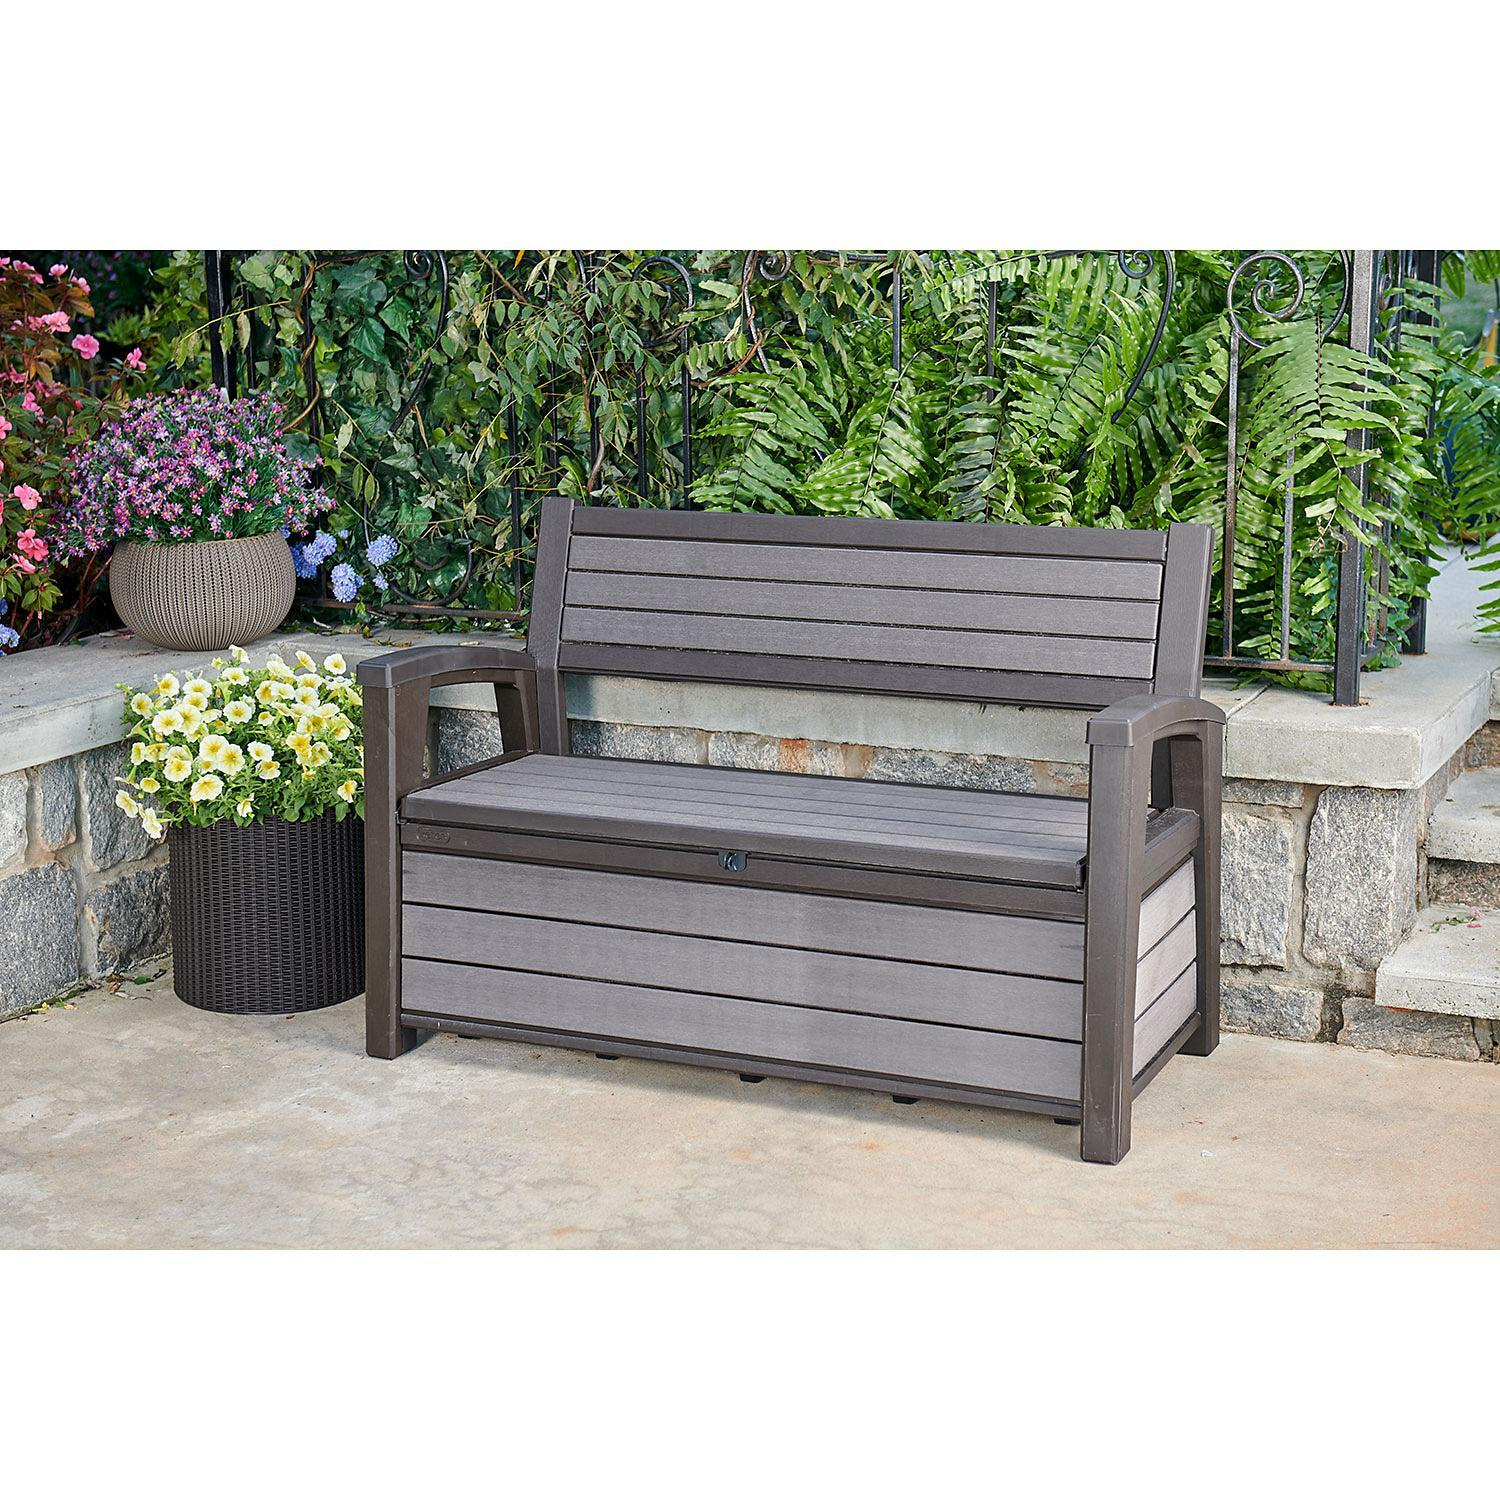 Image of: Keter Hudson Plastic Storage Bench 227 1l Deck Box By Keter Shop Online For Homeware In New Zealand